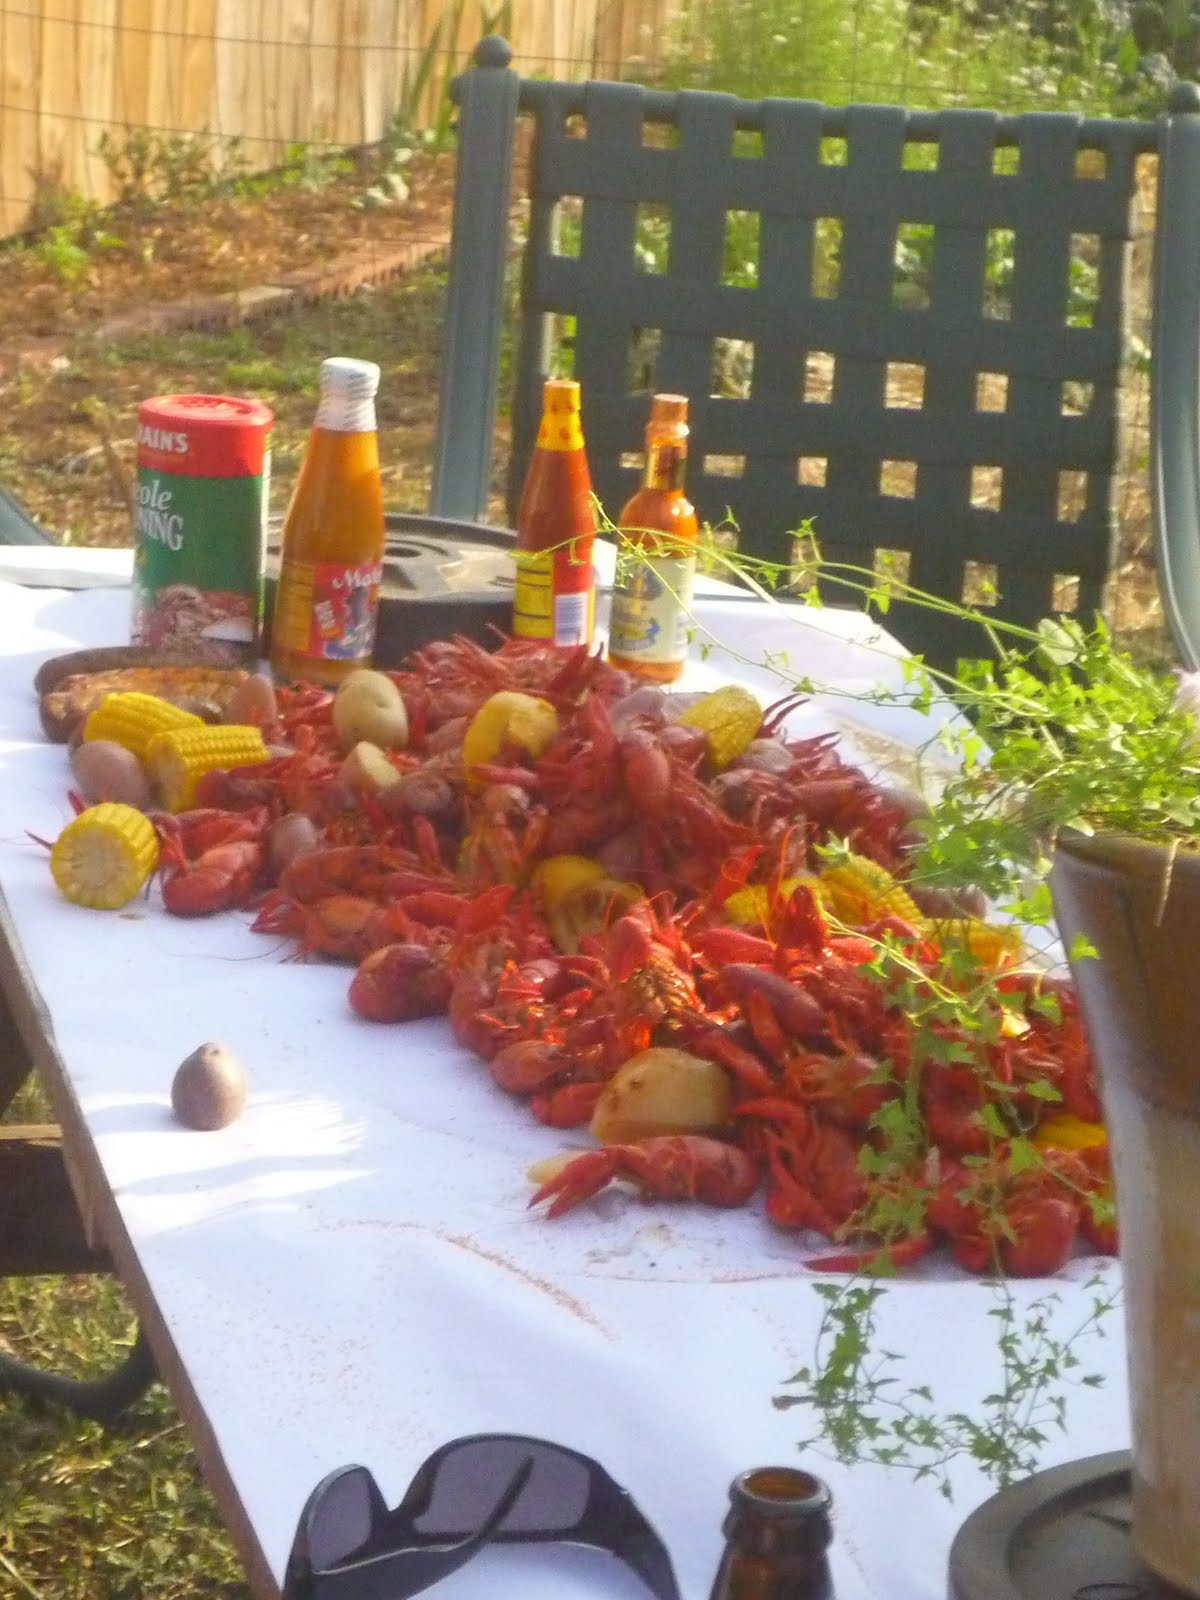 A Friend Of Mine From Louisiana Told Me That It's Custom To Ask Your Guests  For $5 Per Head, To Help Out With The Cost Of The Boil